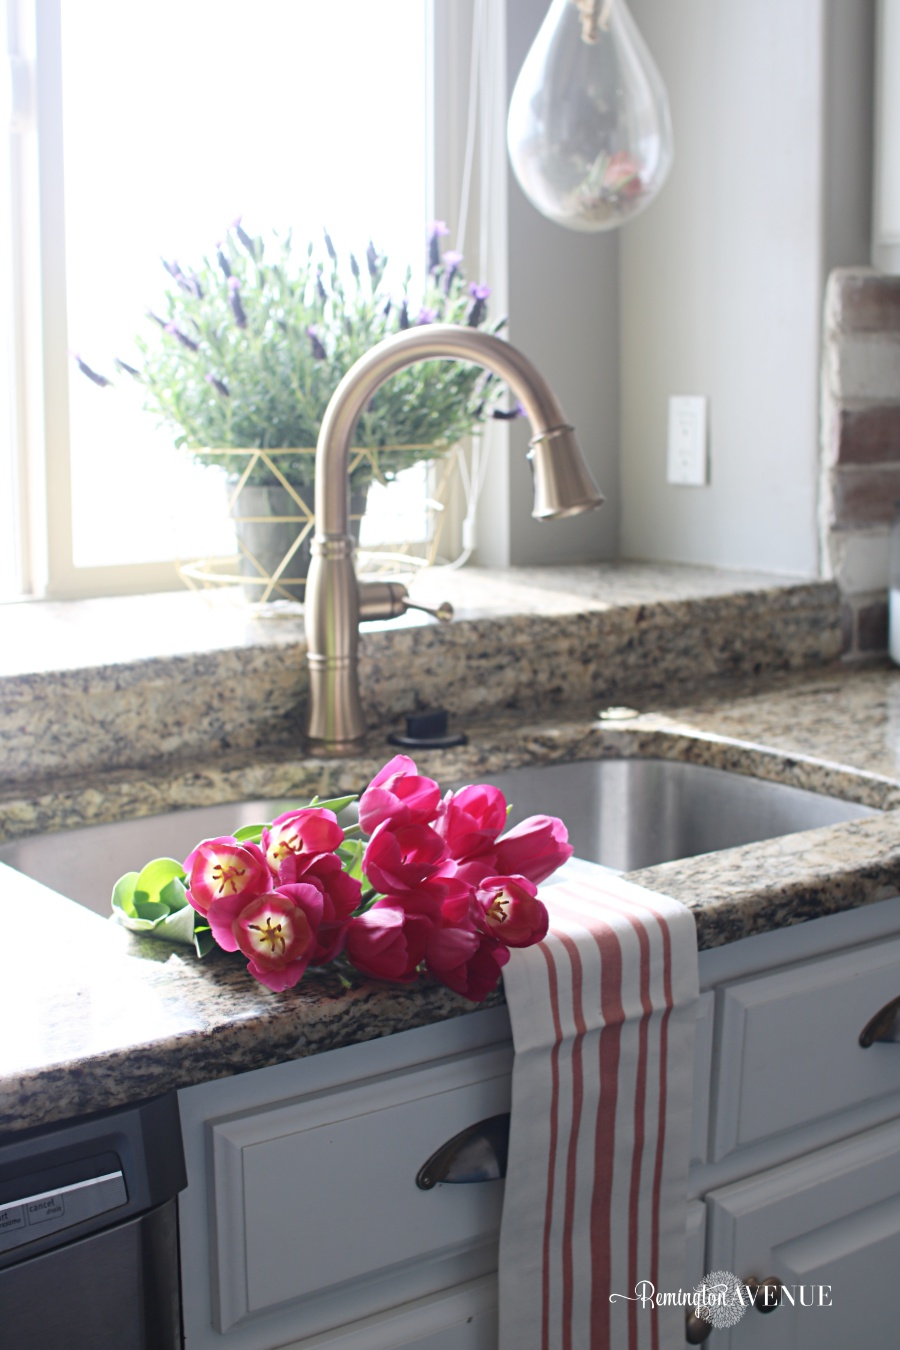 spring decorating- bringing life back into your home